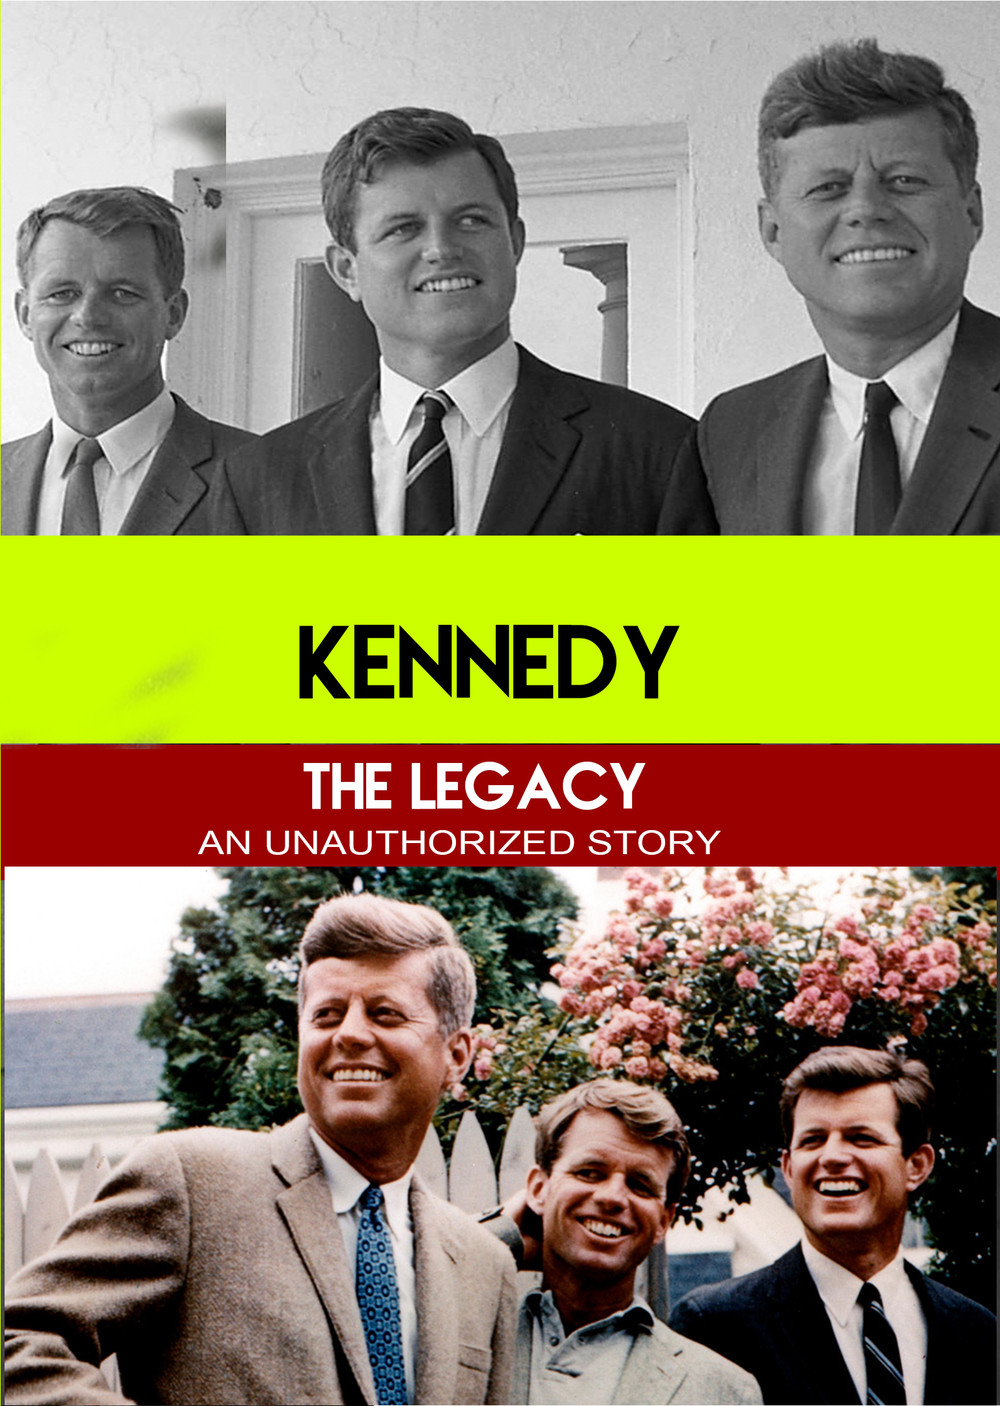 L7807 - Kennedy The Legacy - An Unauthorized Story